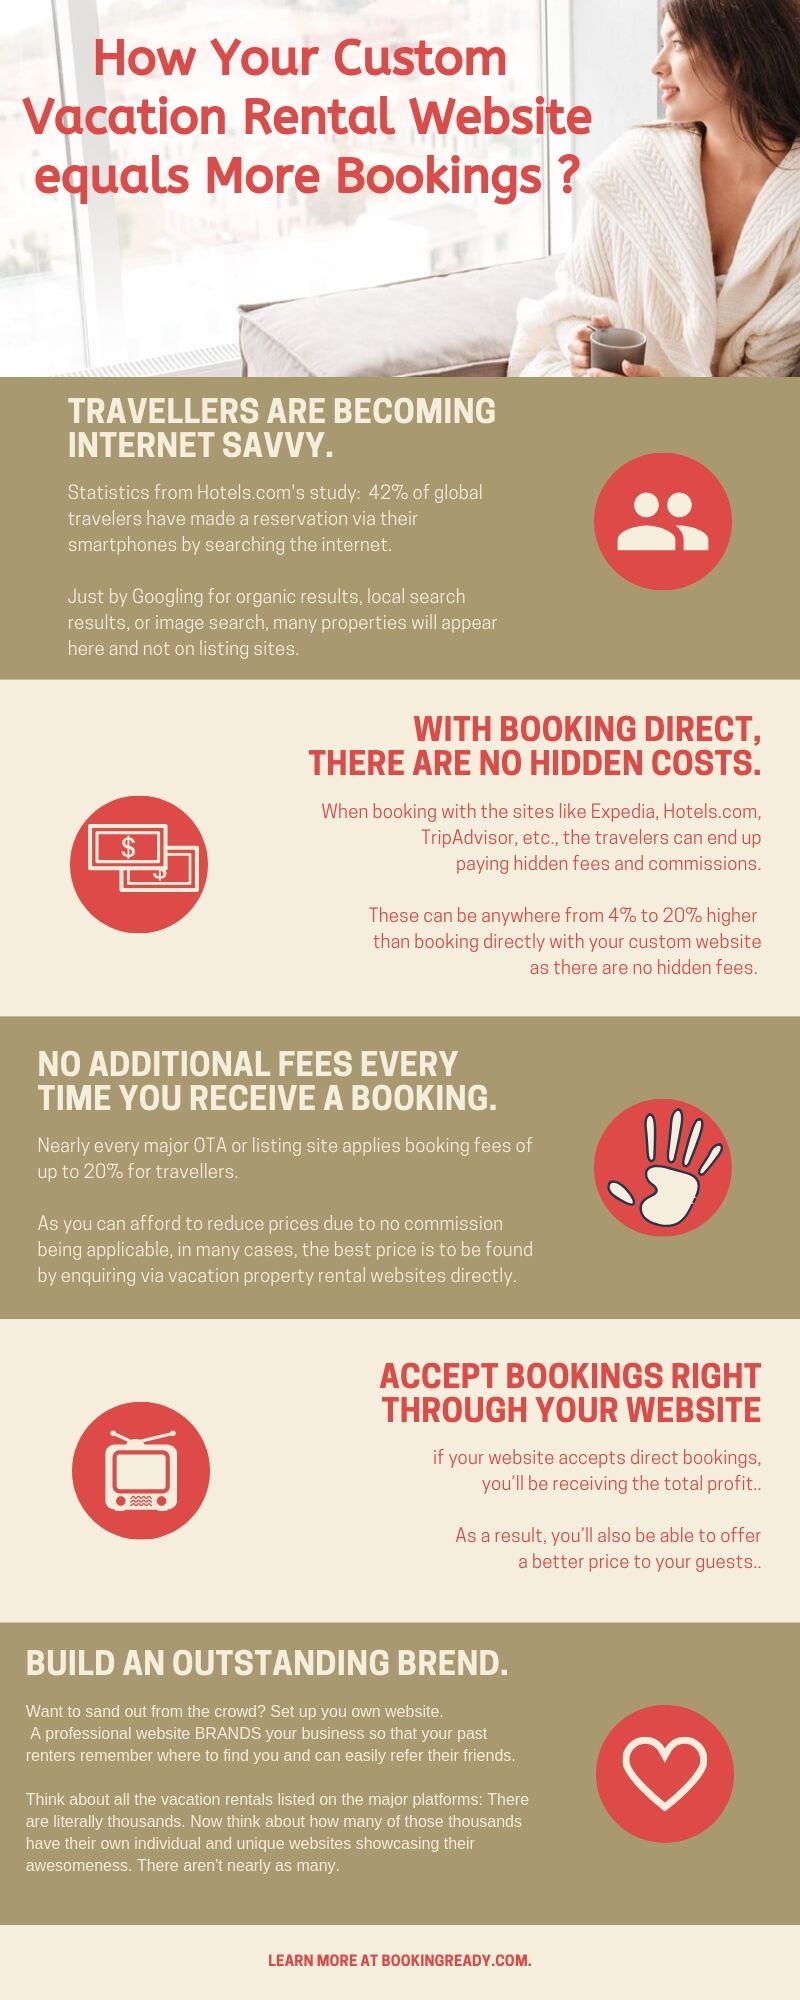 Vacation rental property website - Infographic